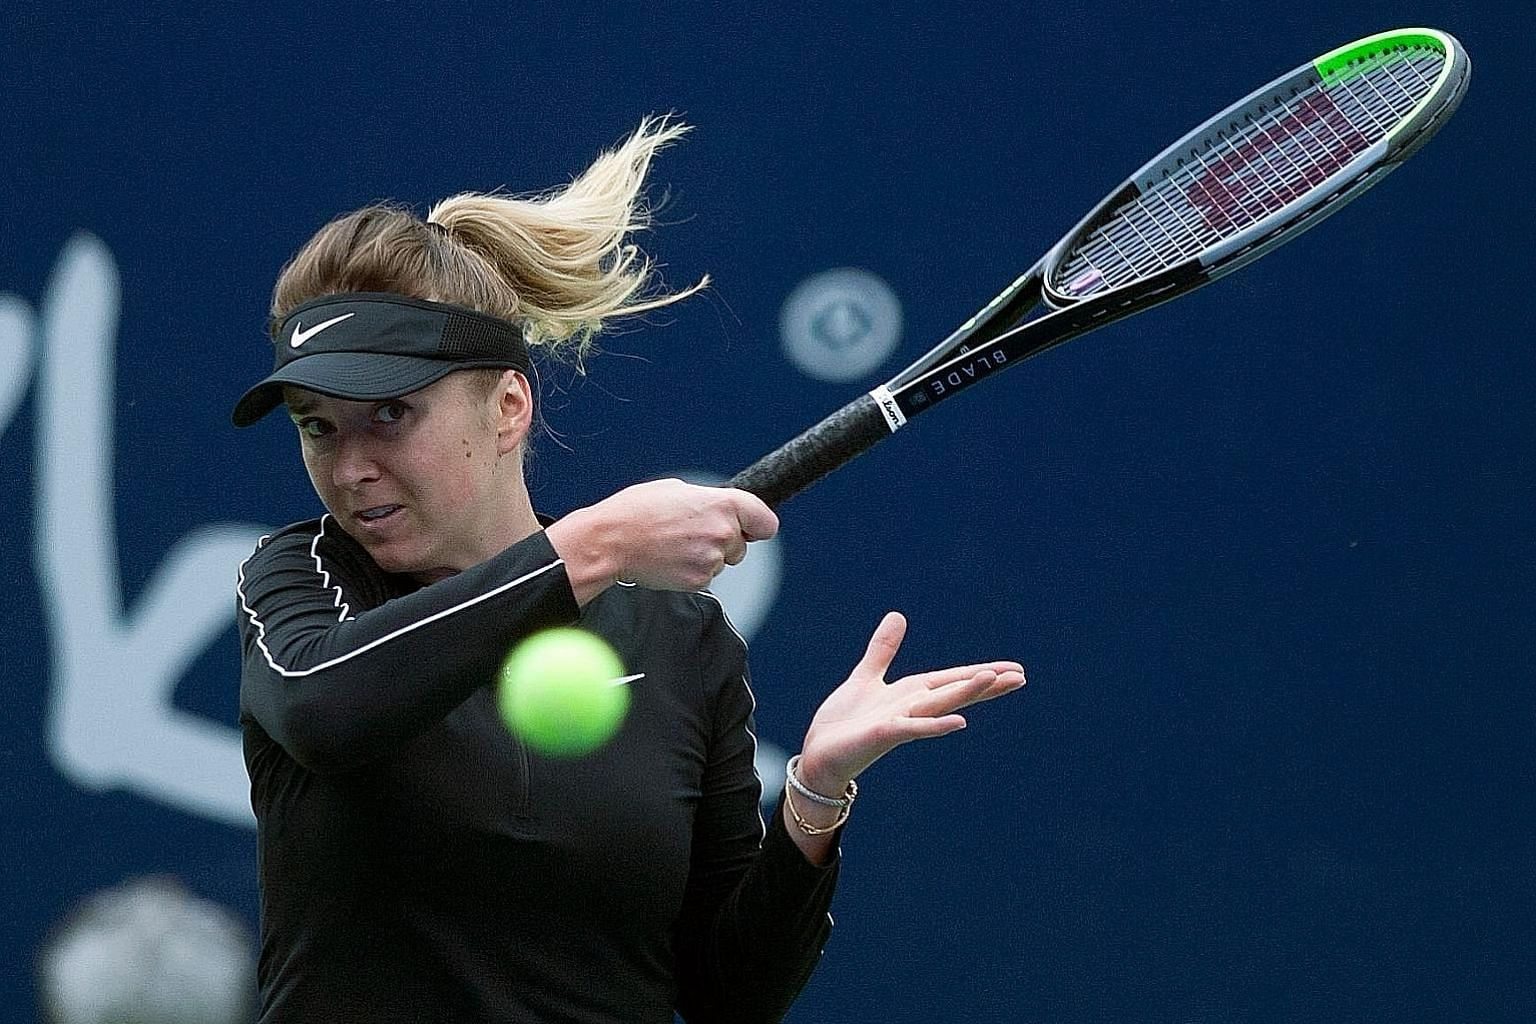 Ukraine's Elina Svitolina en route to beating Czech Marie Bouzkova to win the Monterrey Open in Mexico on March 8. Along with the Lyon Open, they were the last pieces of WTA Tour action before the coronavirus forced the suspension of the season. PHOT